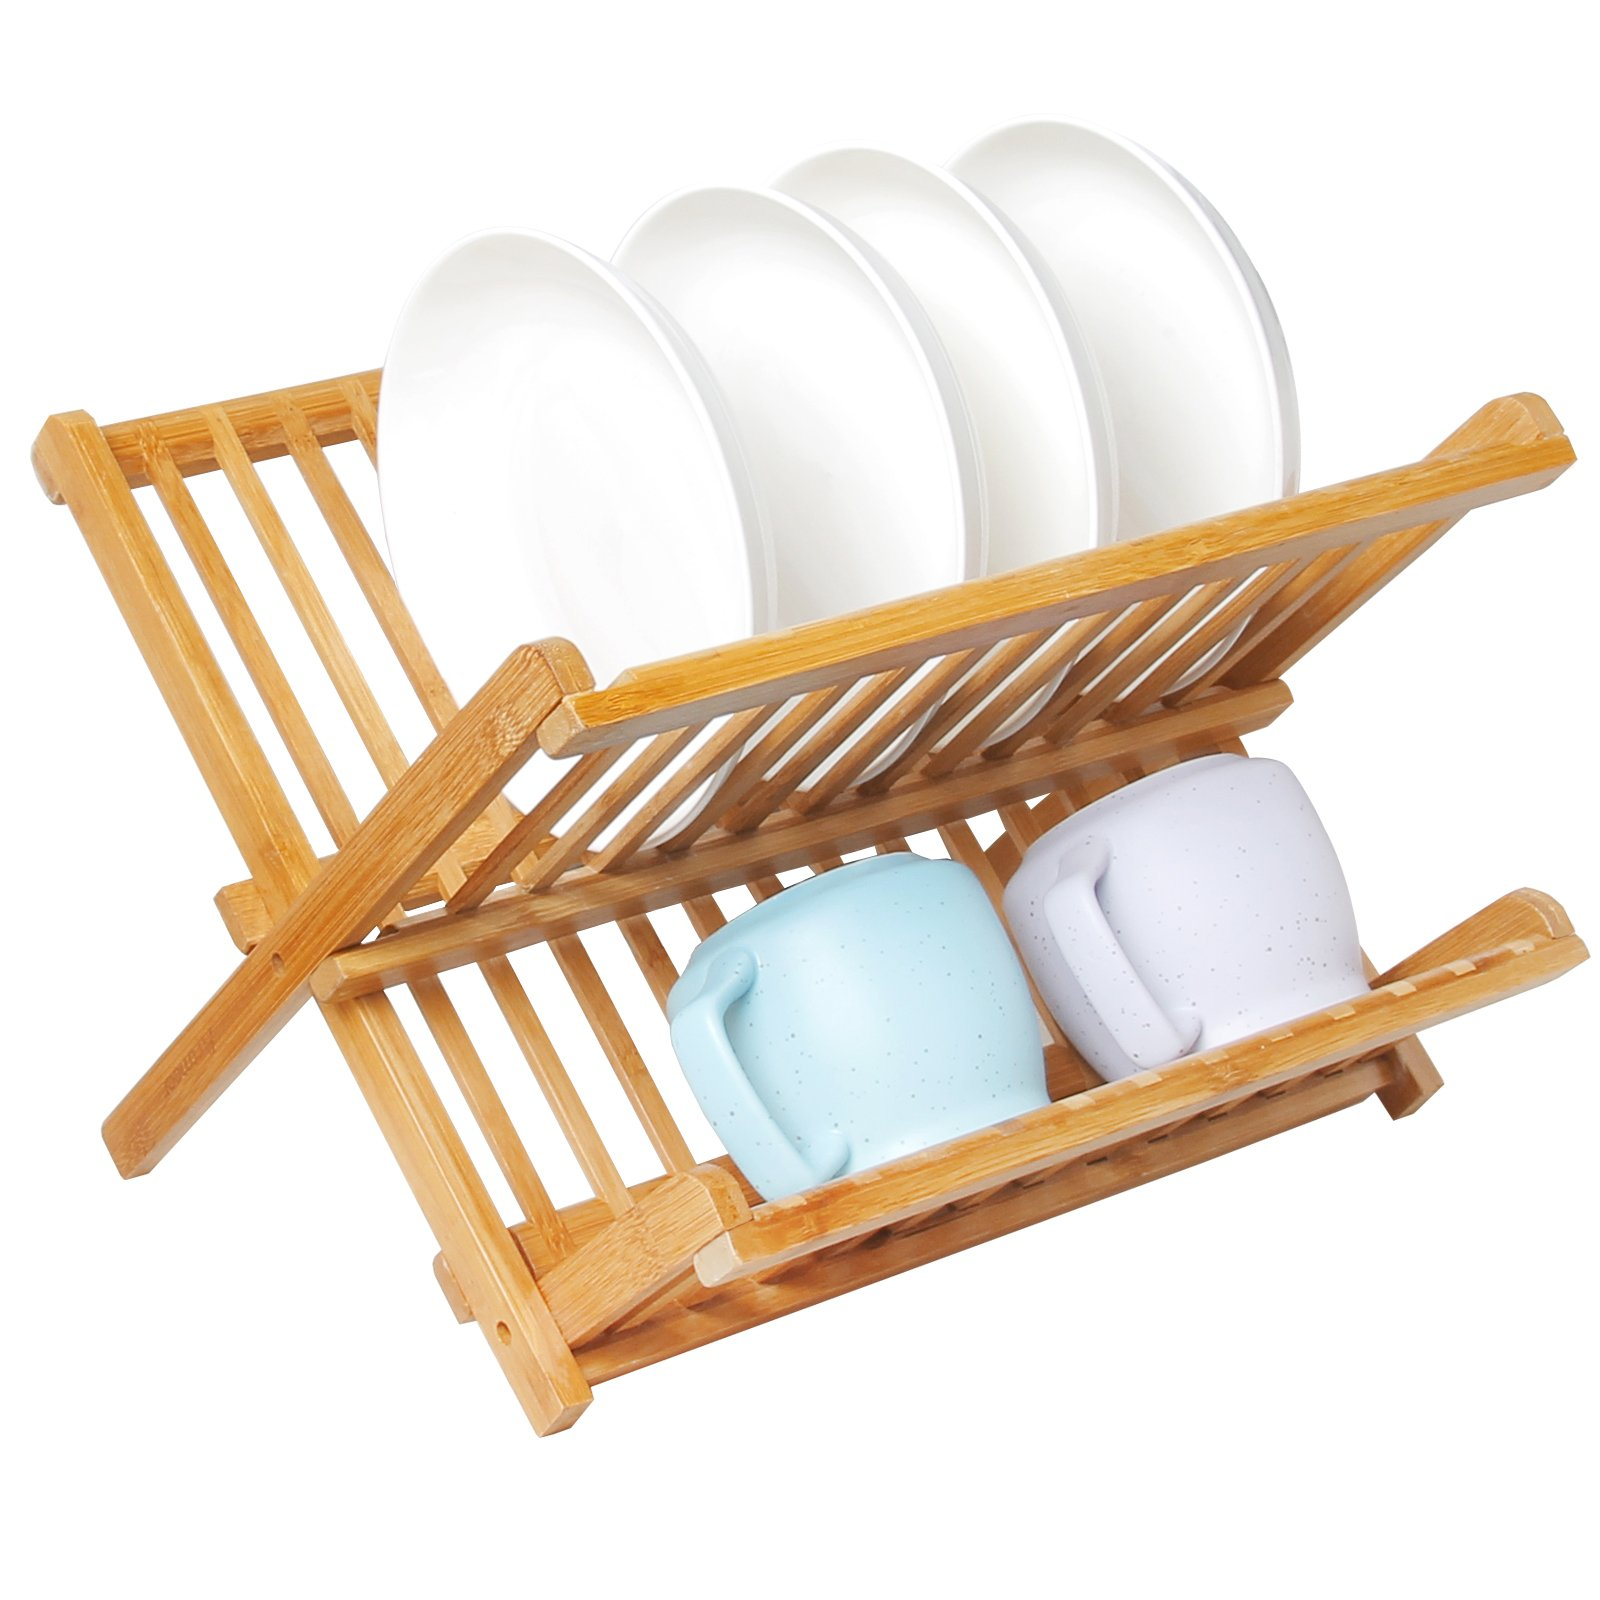 Artmeer Collapsible Bamboo Dish Rack, Holding Plate Holder, Cup Drying Strainer